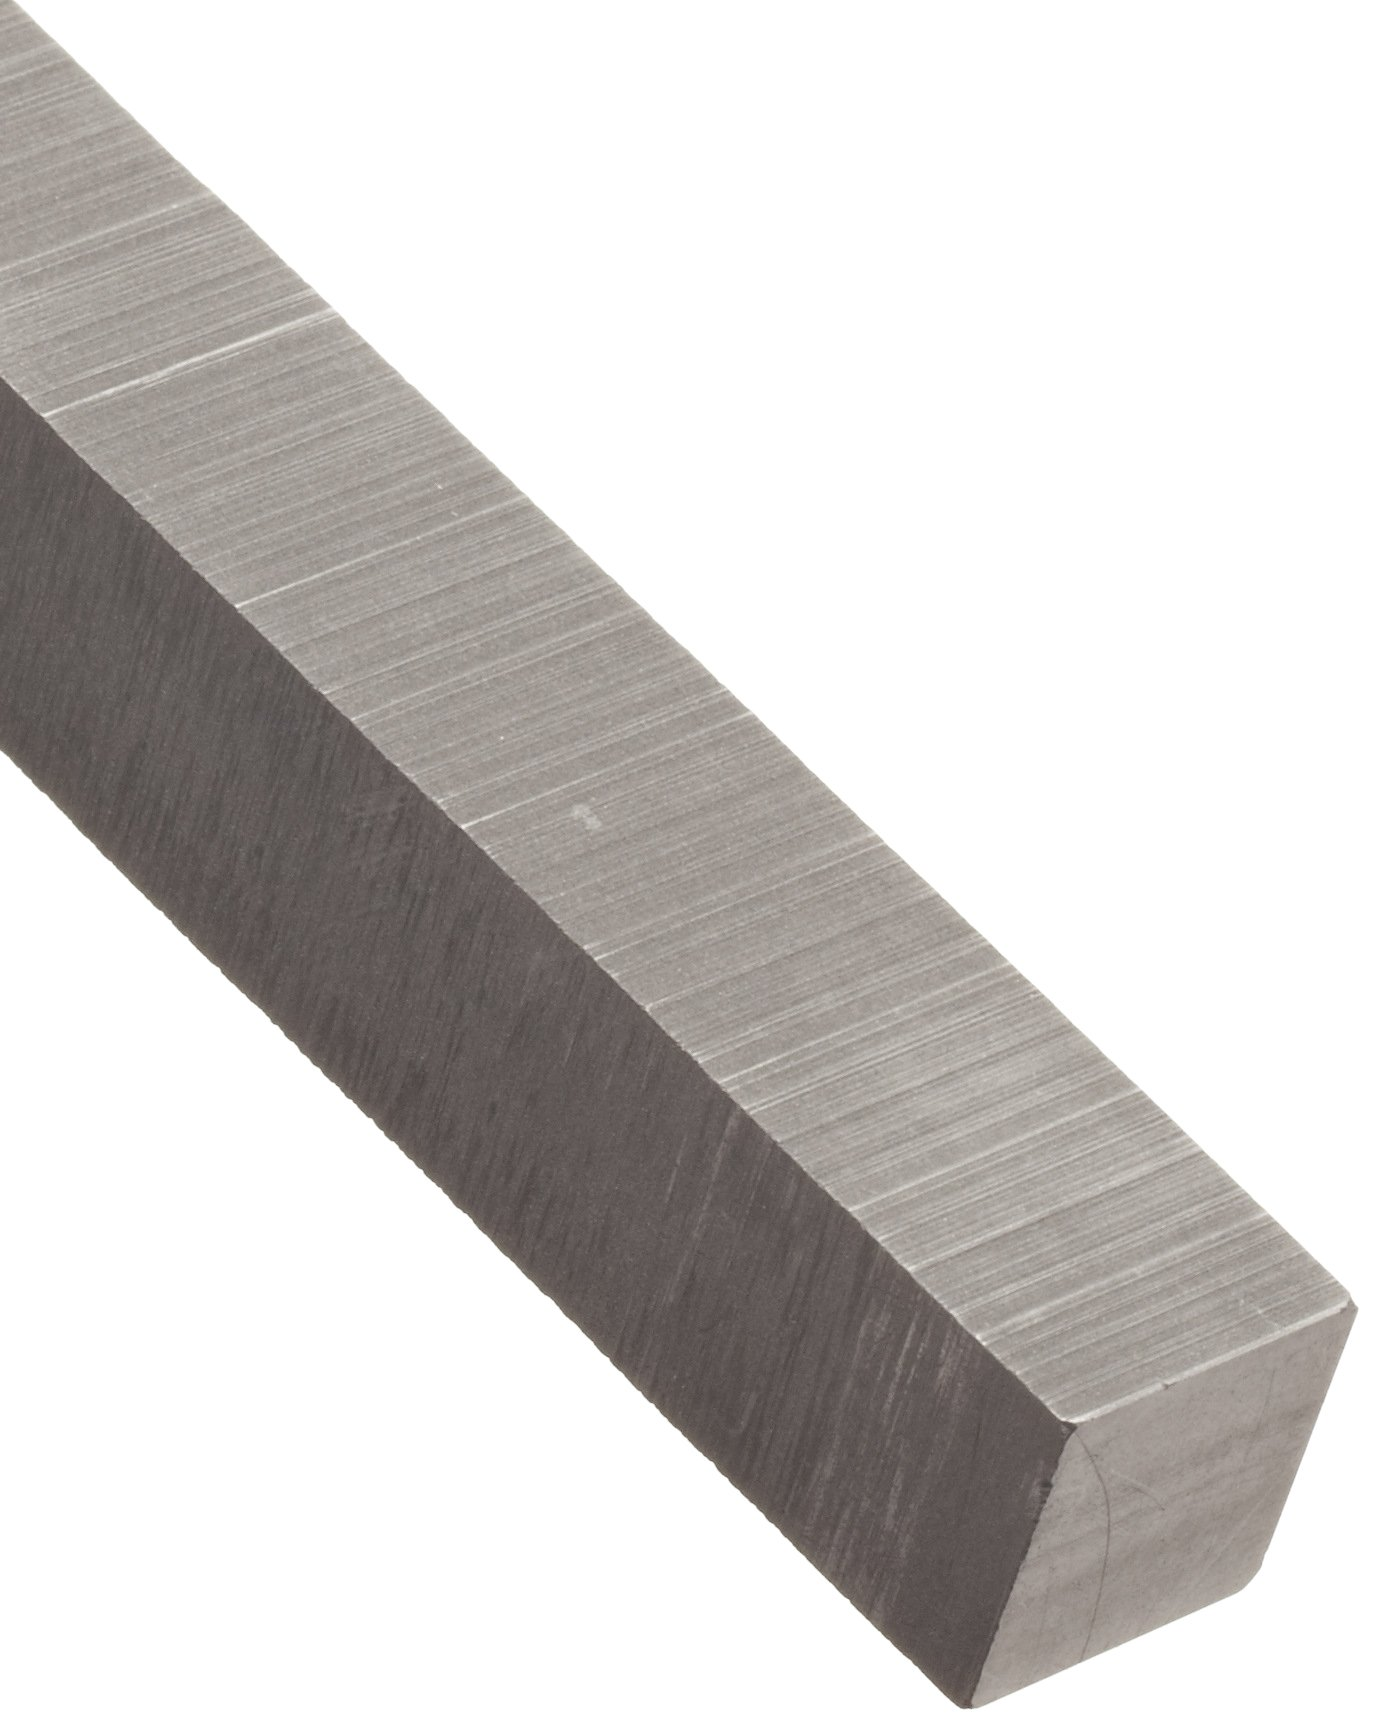 Graphite Rectangular Bar, Oversized Tolerance, 1'' Thickness, 6'' Width, 6'' Length